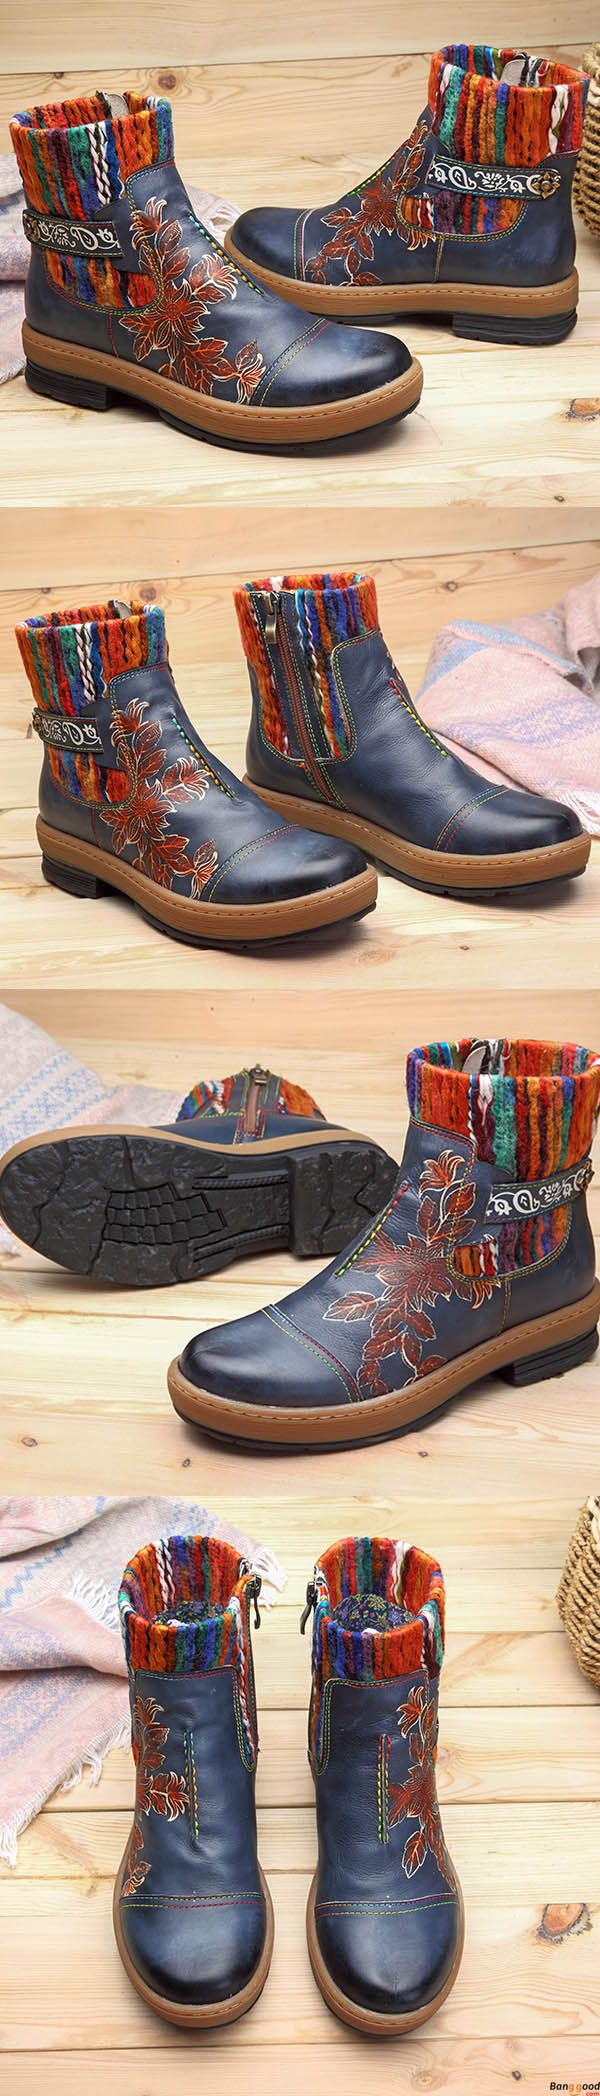 US$68.76 + Free shipping. SOCOFY Bohemian Color Match Pattern Ankle Flat Leather Boots. Women fashion winter style. Shop at banggood now.